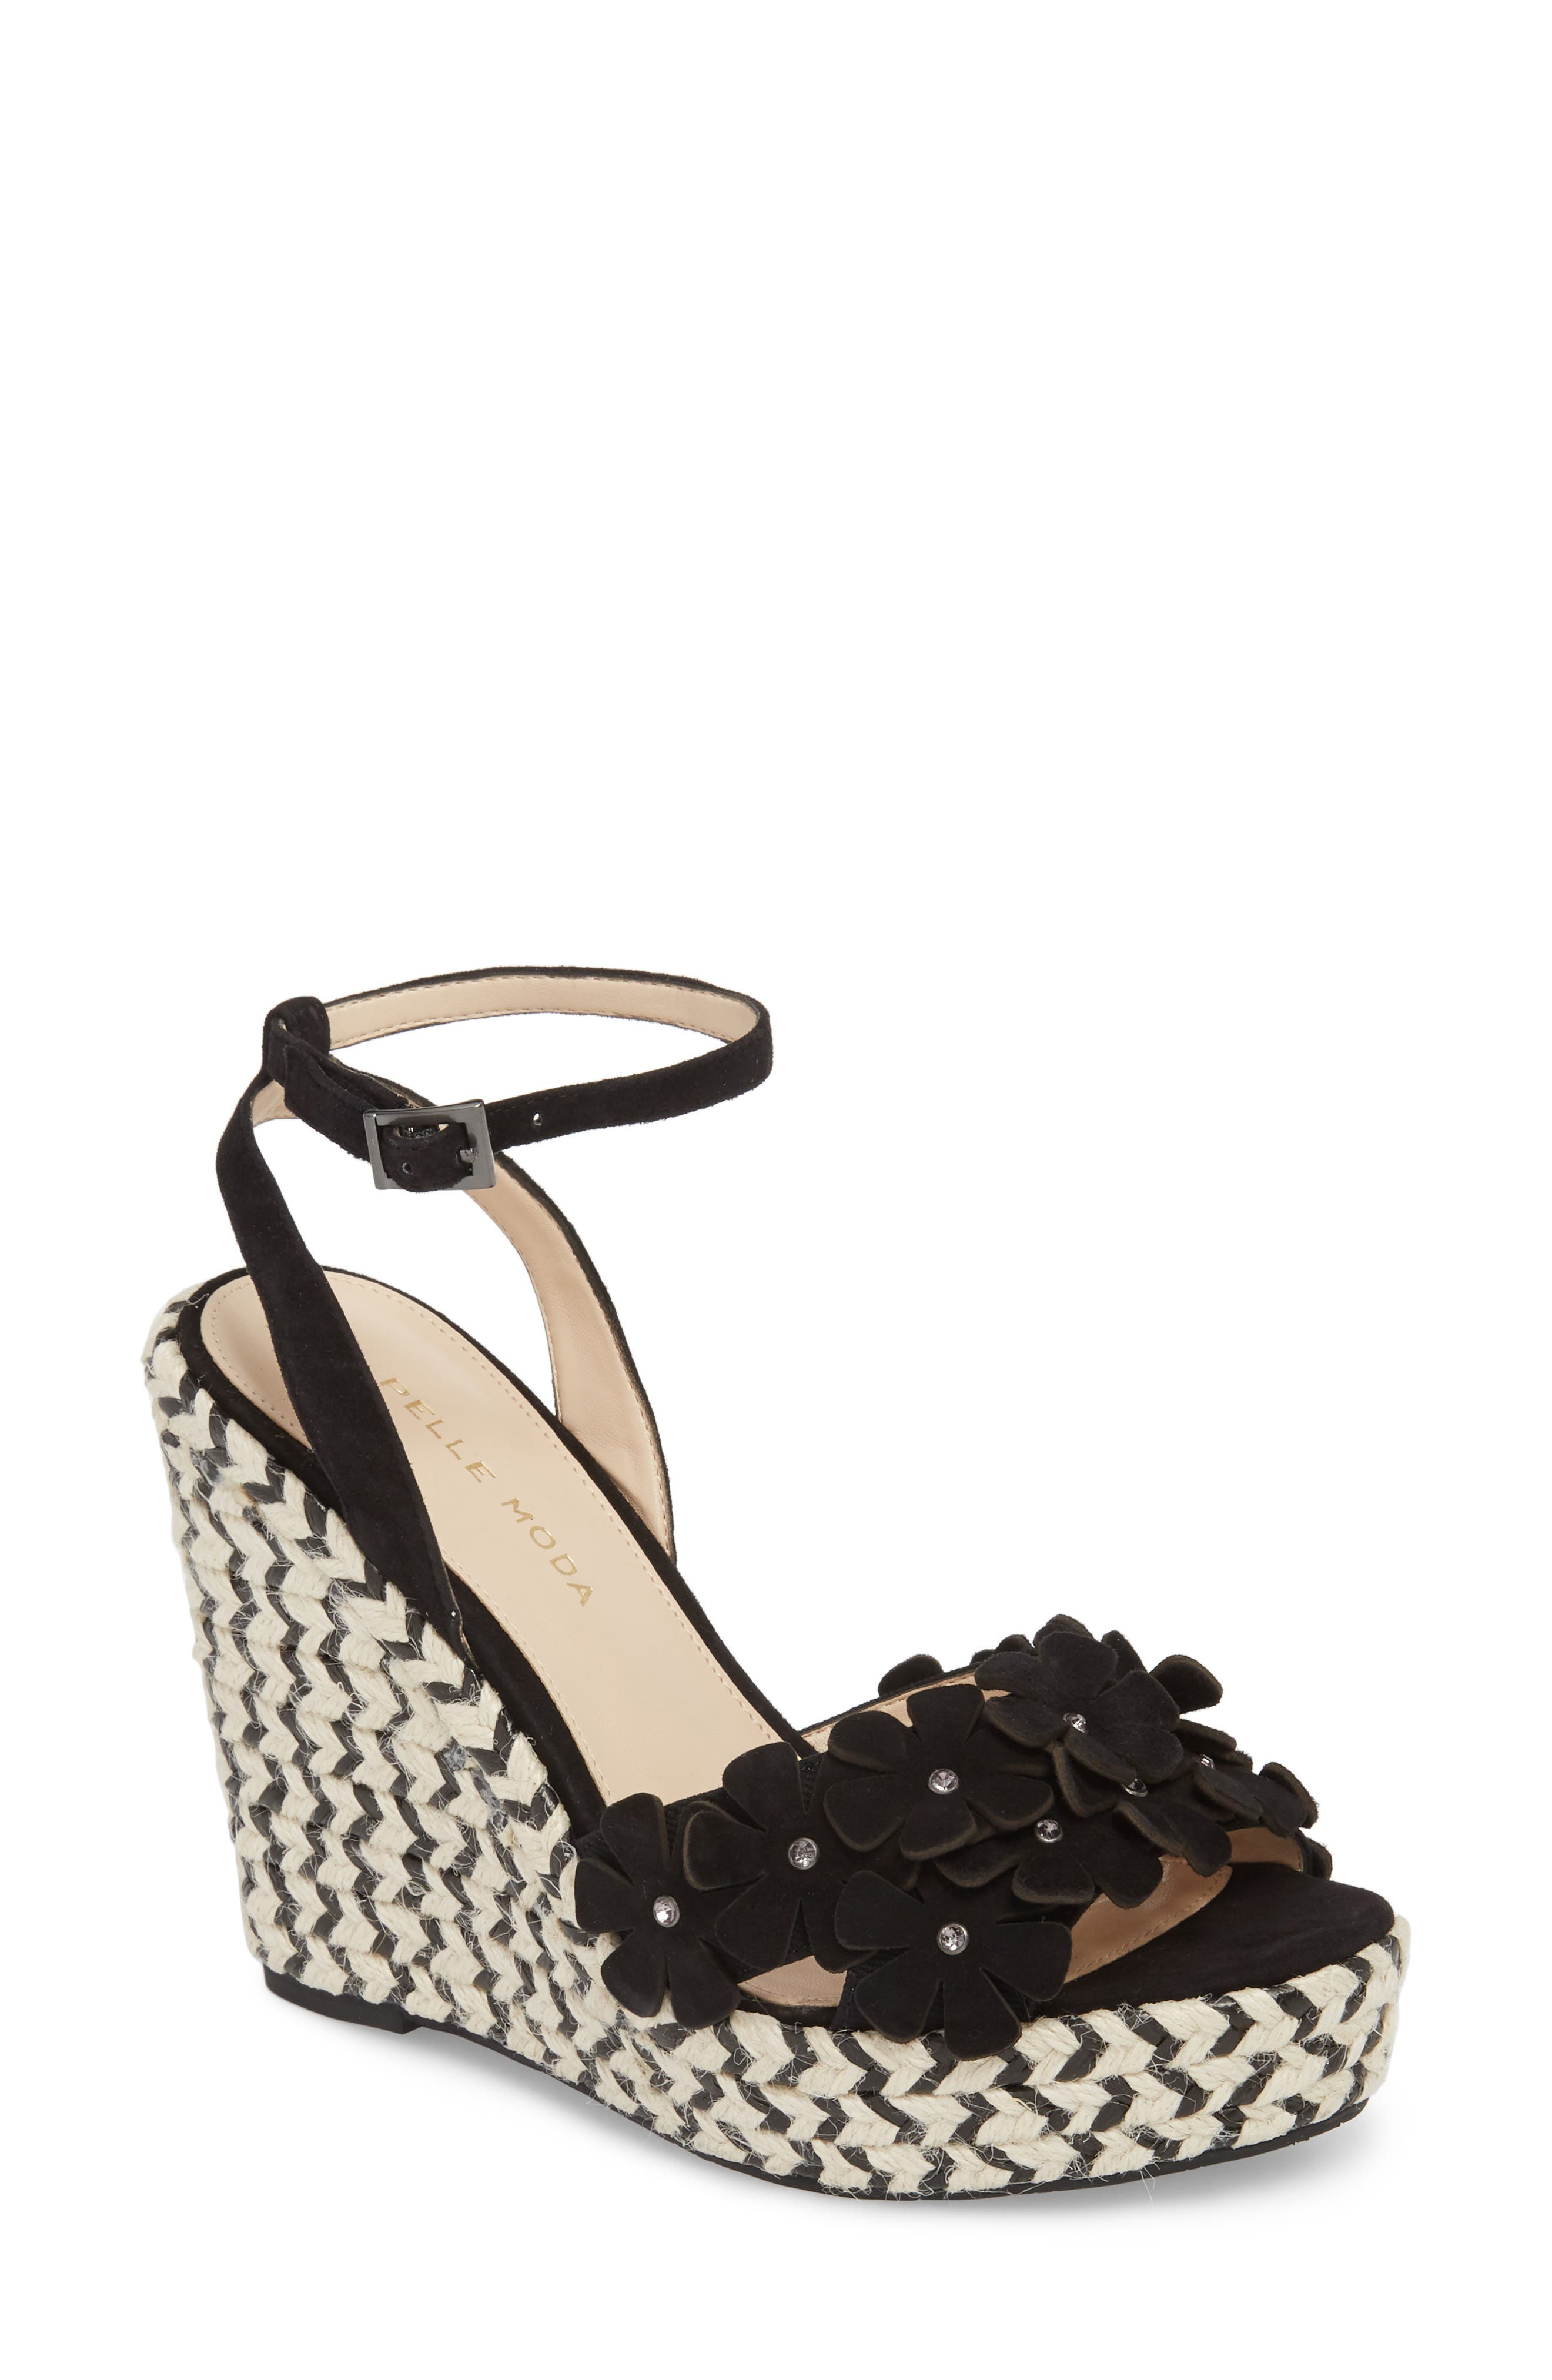 Waylin Espadrille Wedge Sandal,                         Main,                         color, 001